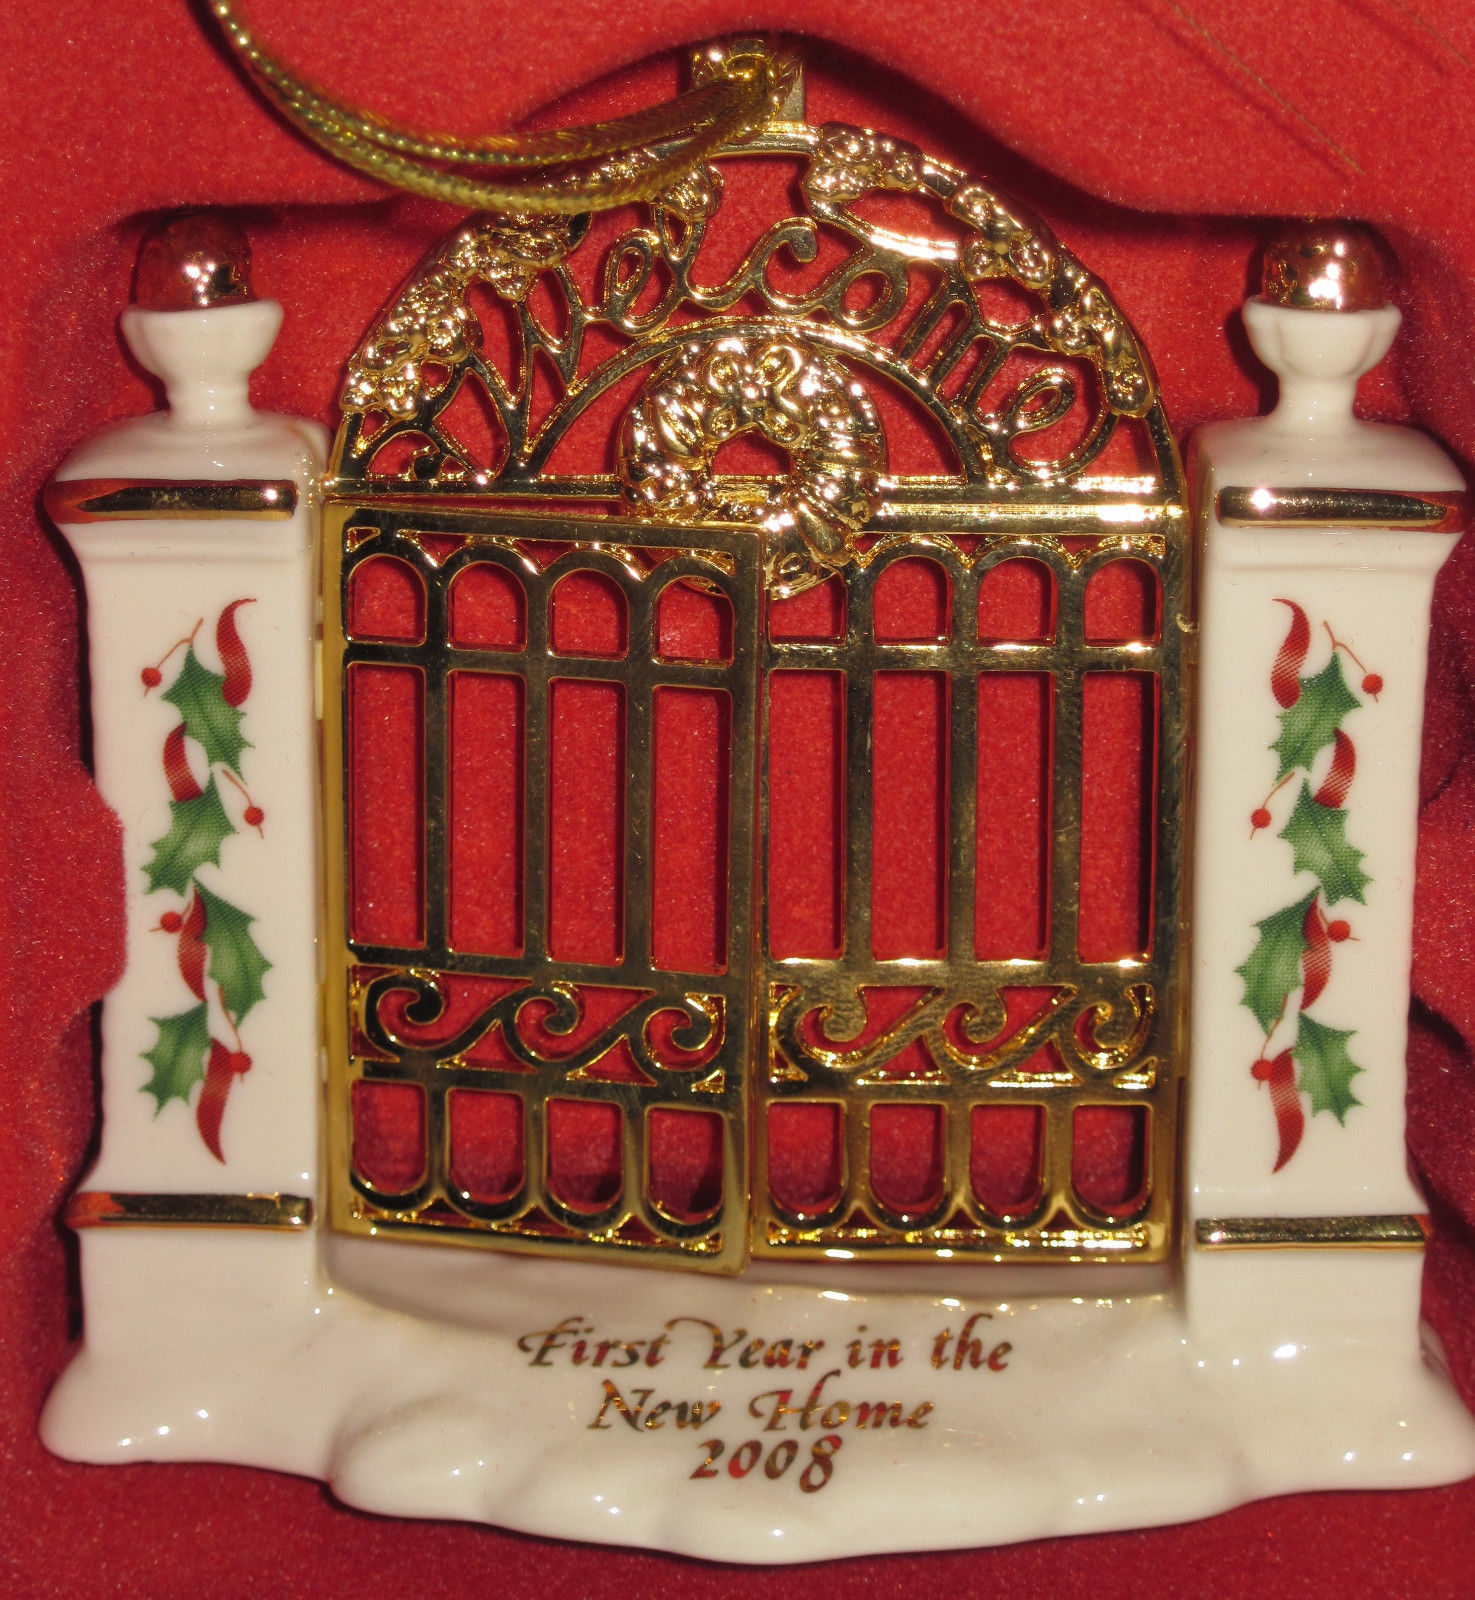 NIB Lenox 2008 Annual First Year in New Home Christmas Ornament Welcome Gate image 3